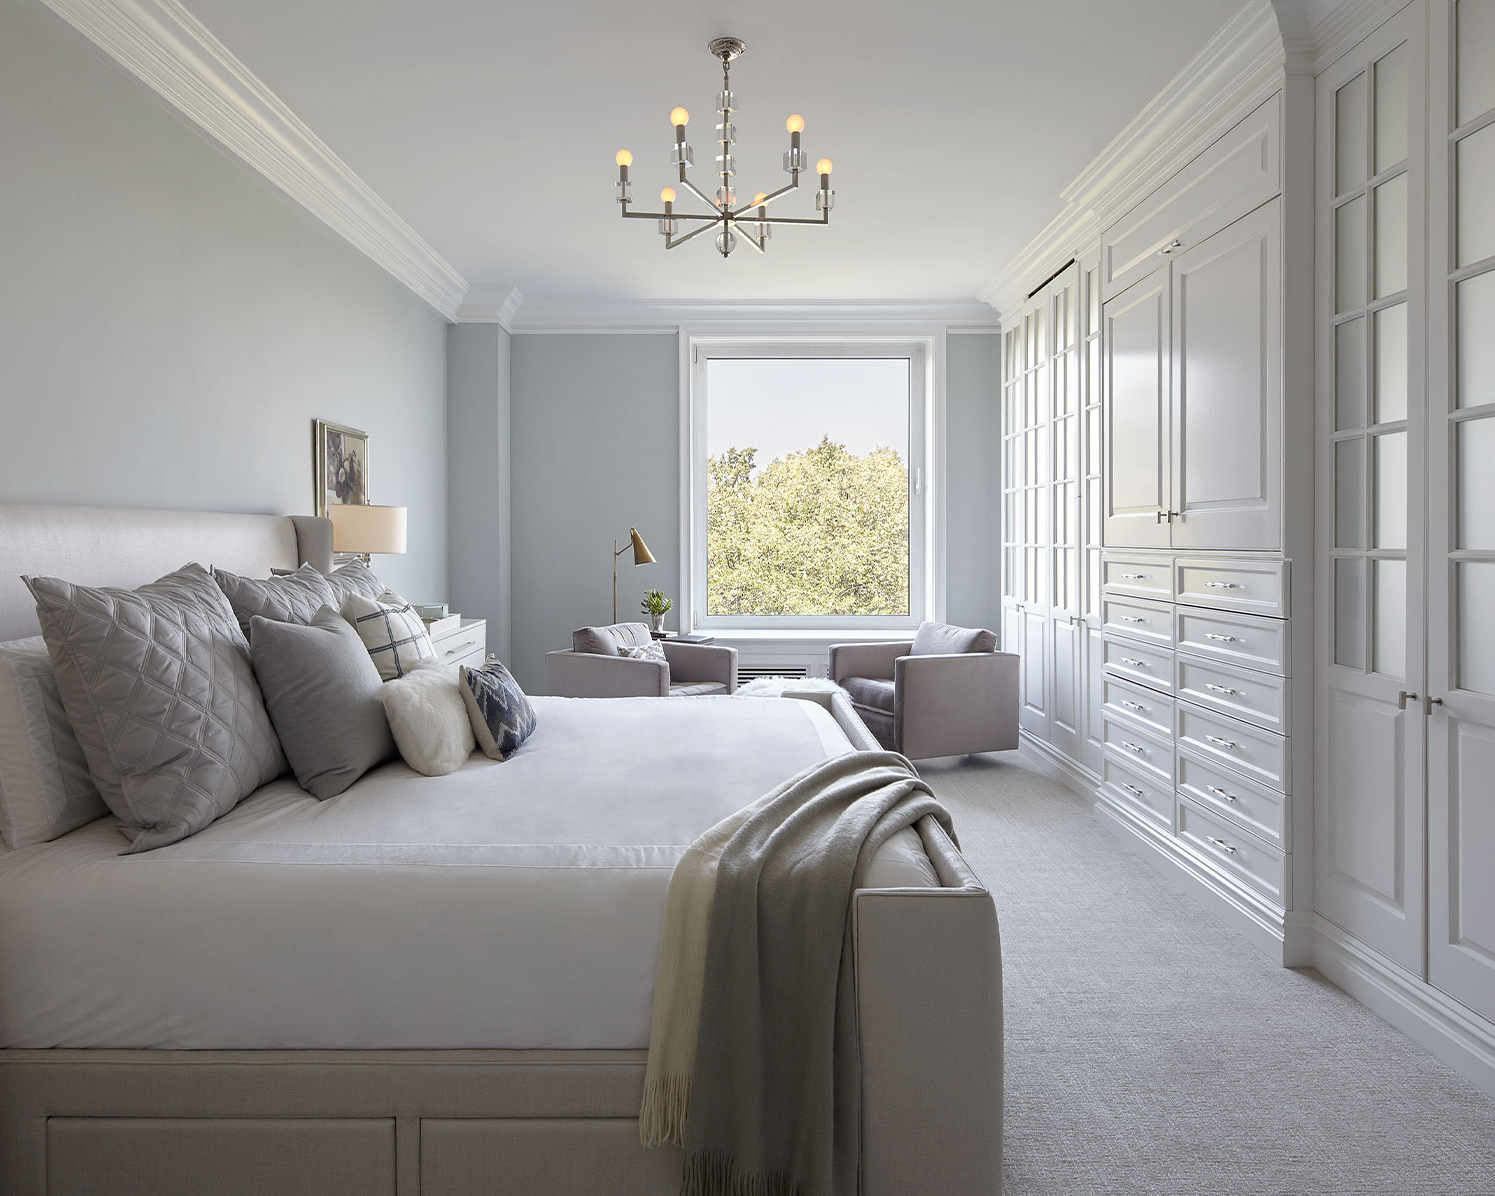 Tranquil and serene master suite interior design by Darci Hether New York